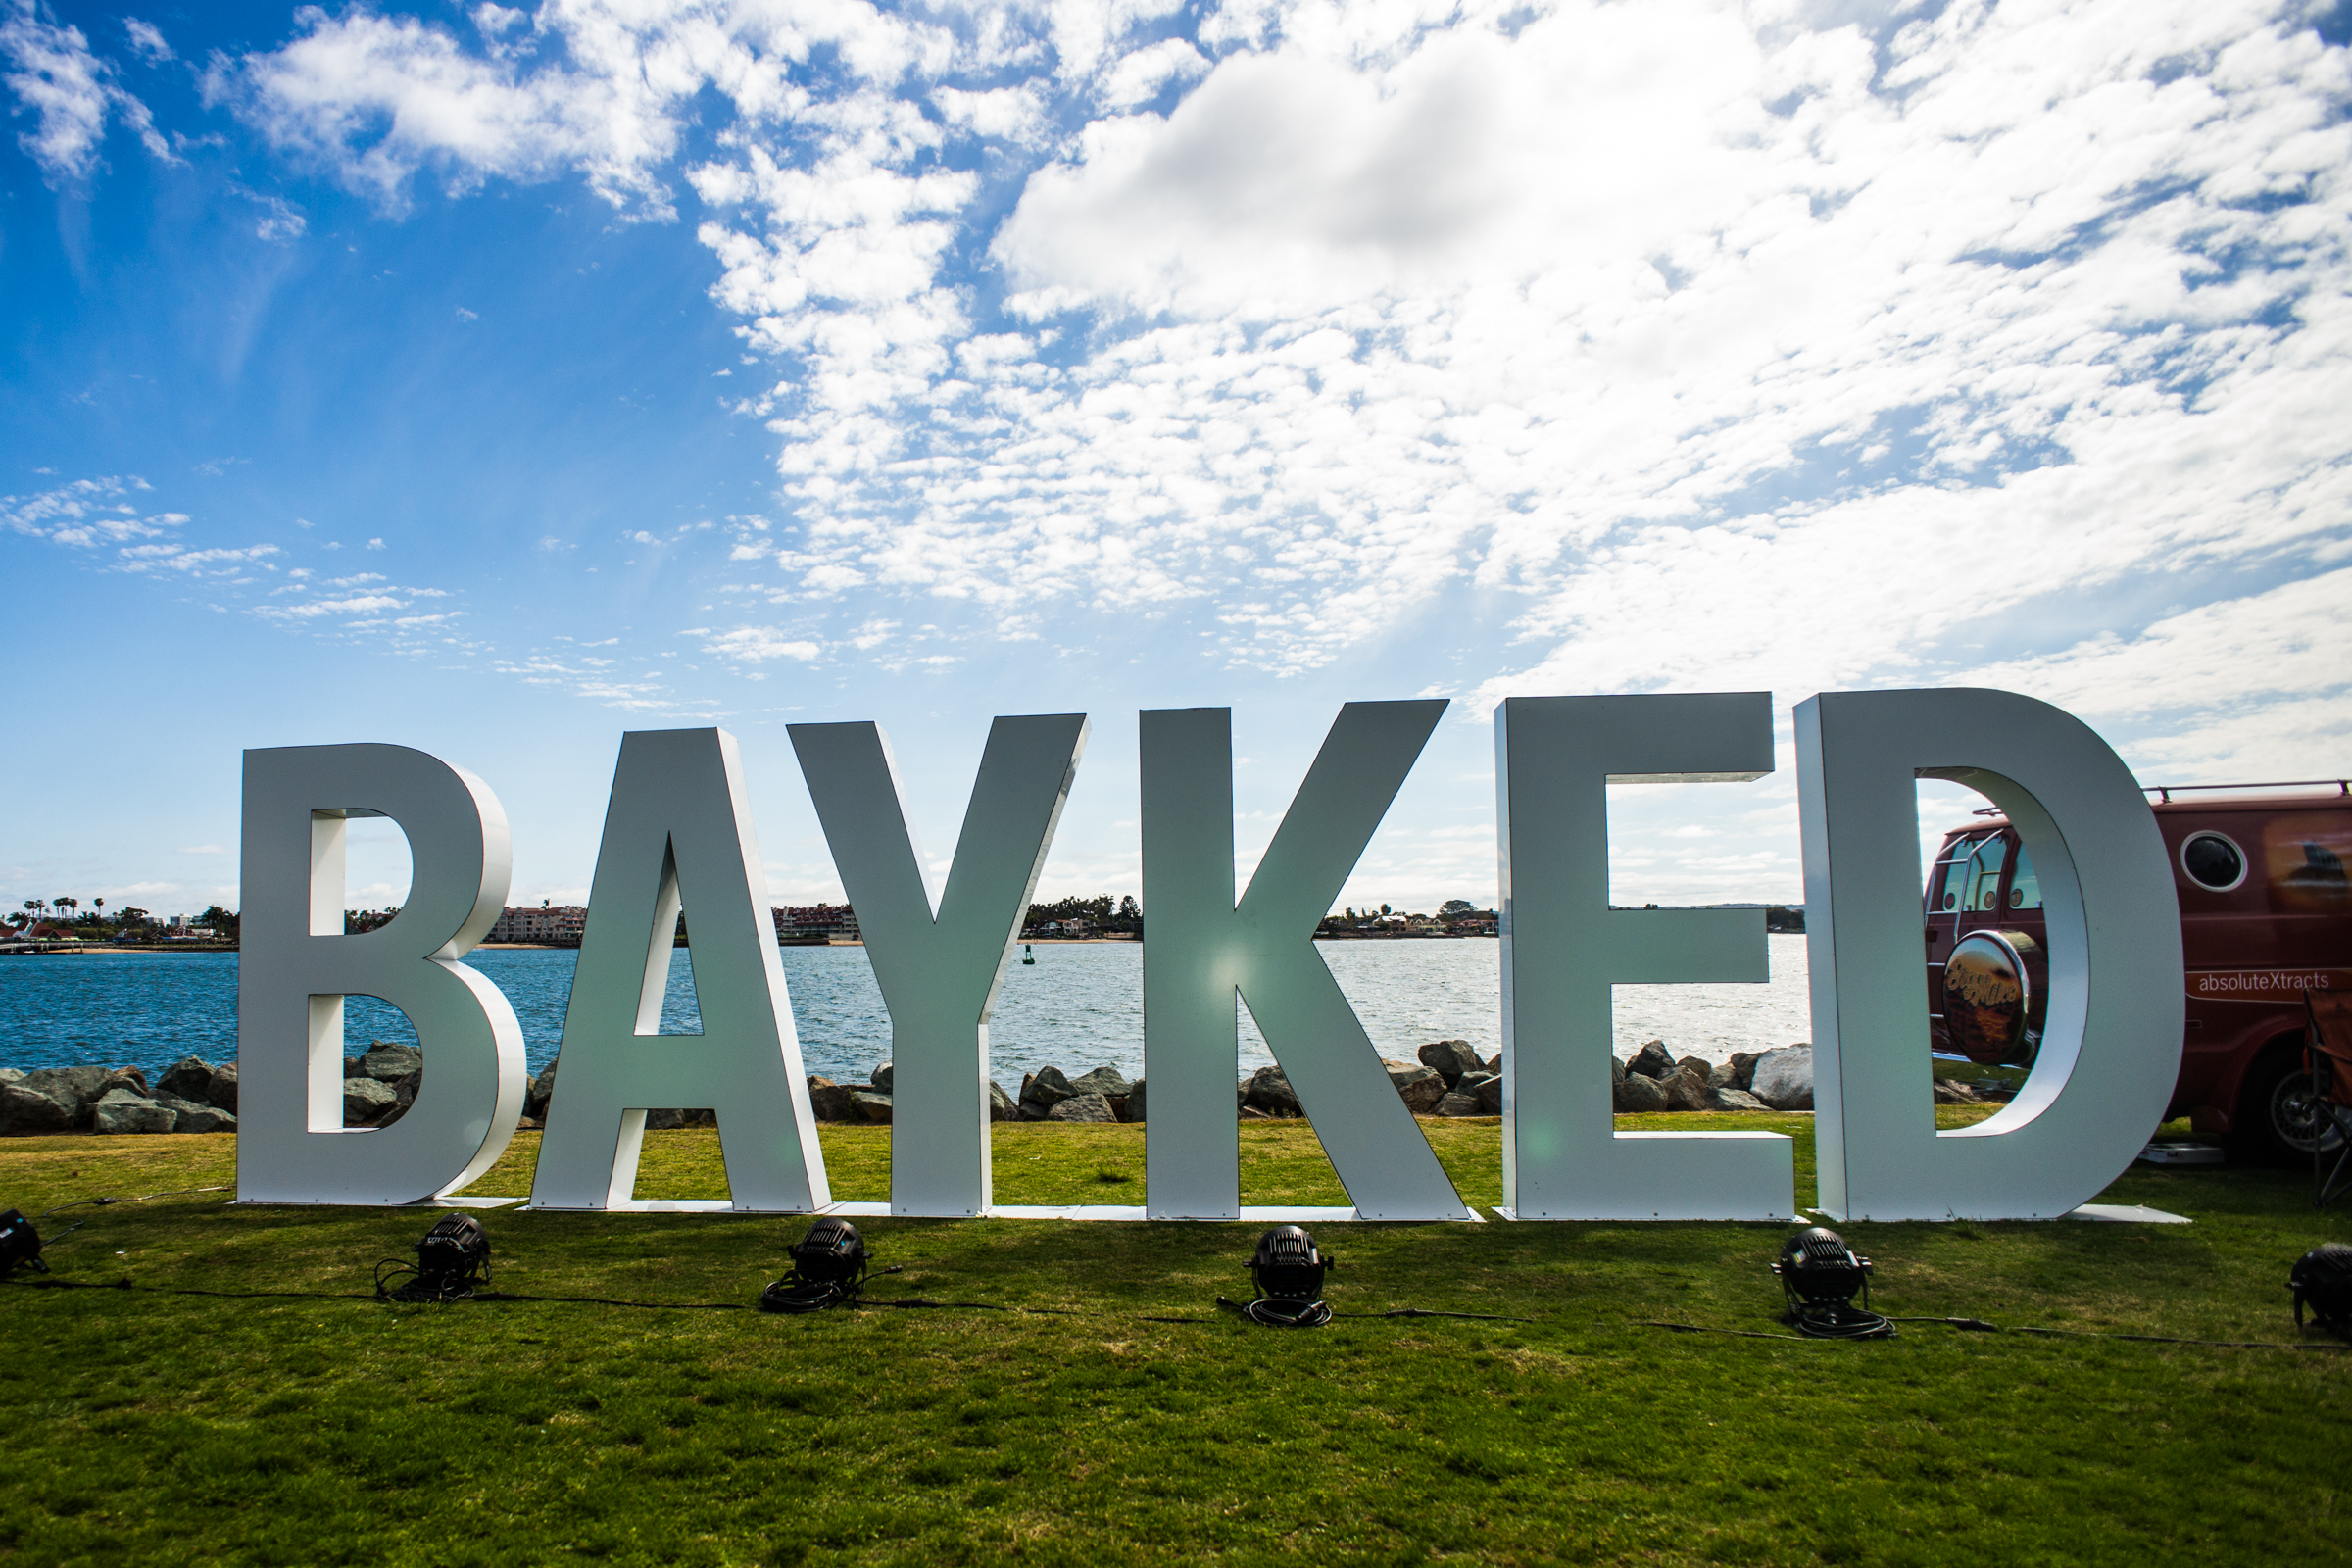 BAYKED SD 2019 Recap Video Feat. Rick Ross, Gramatik, Brasstracks!